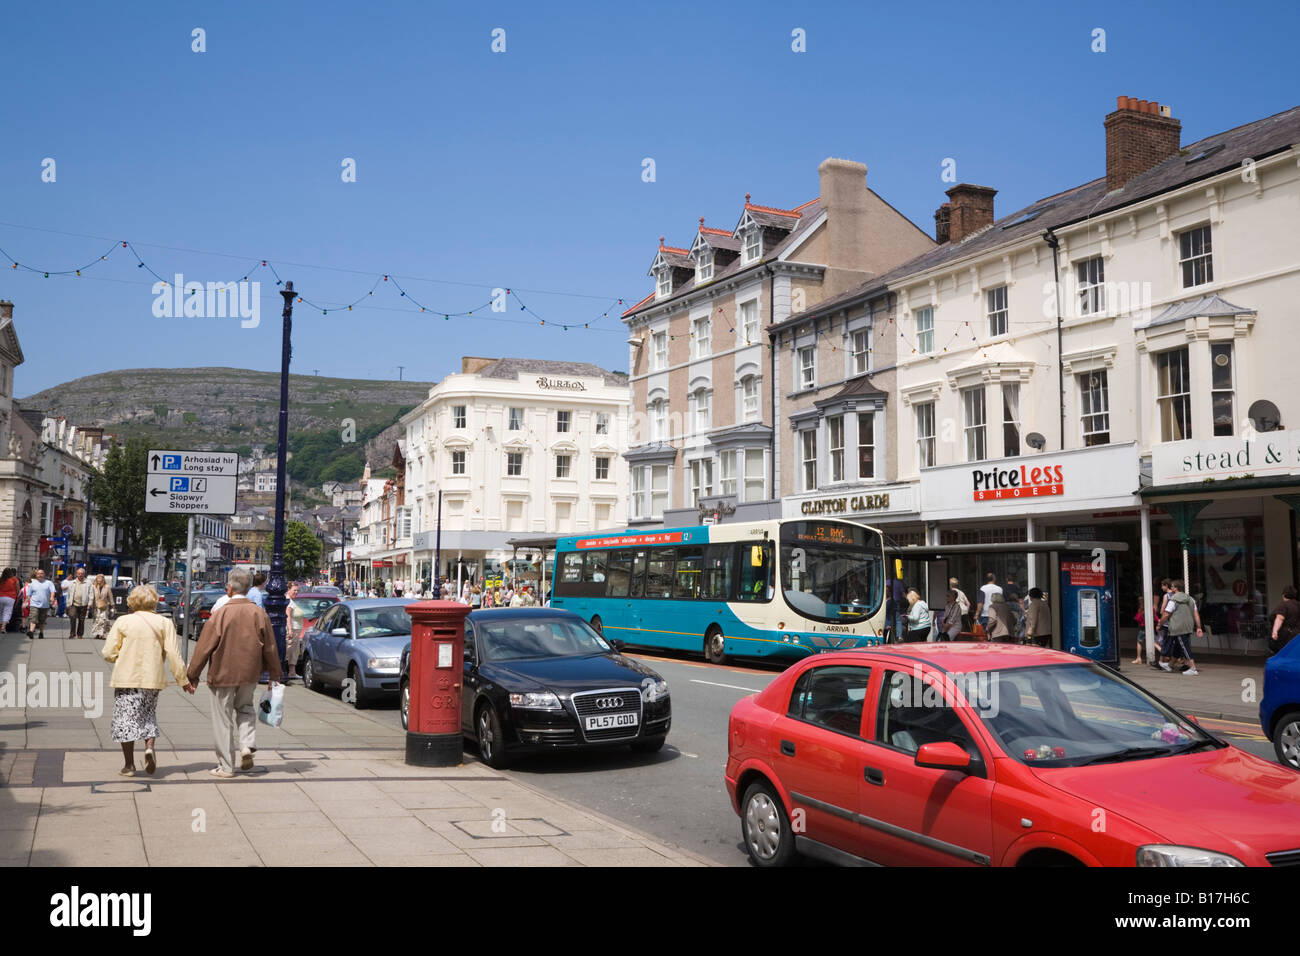 Traffic and pedestrians in busy high street with shops in Victorian buildings in town centre. Llandudno North Wales Stock Photo